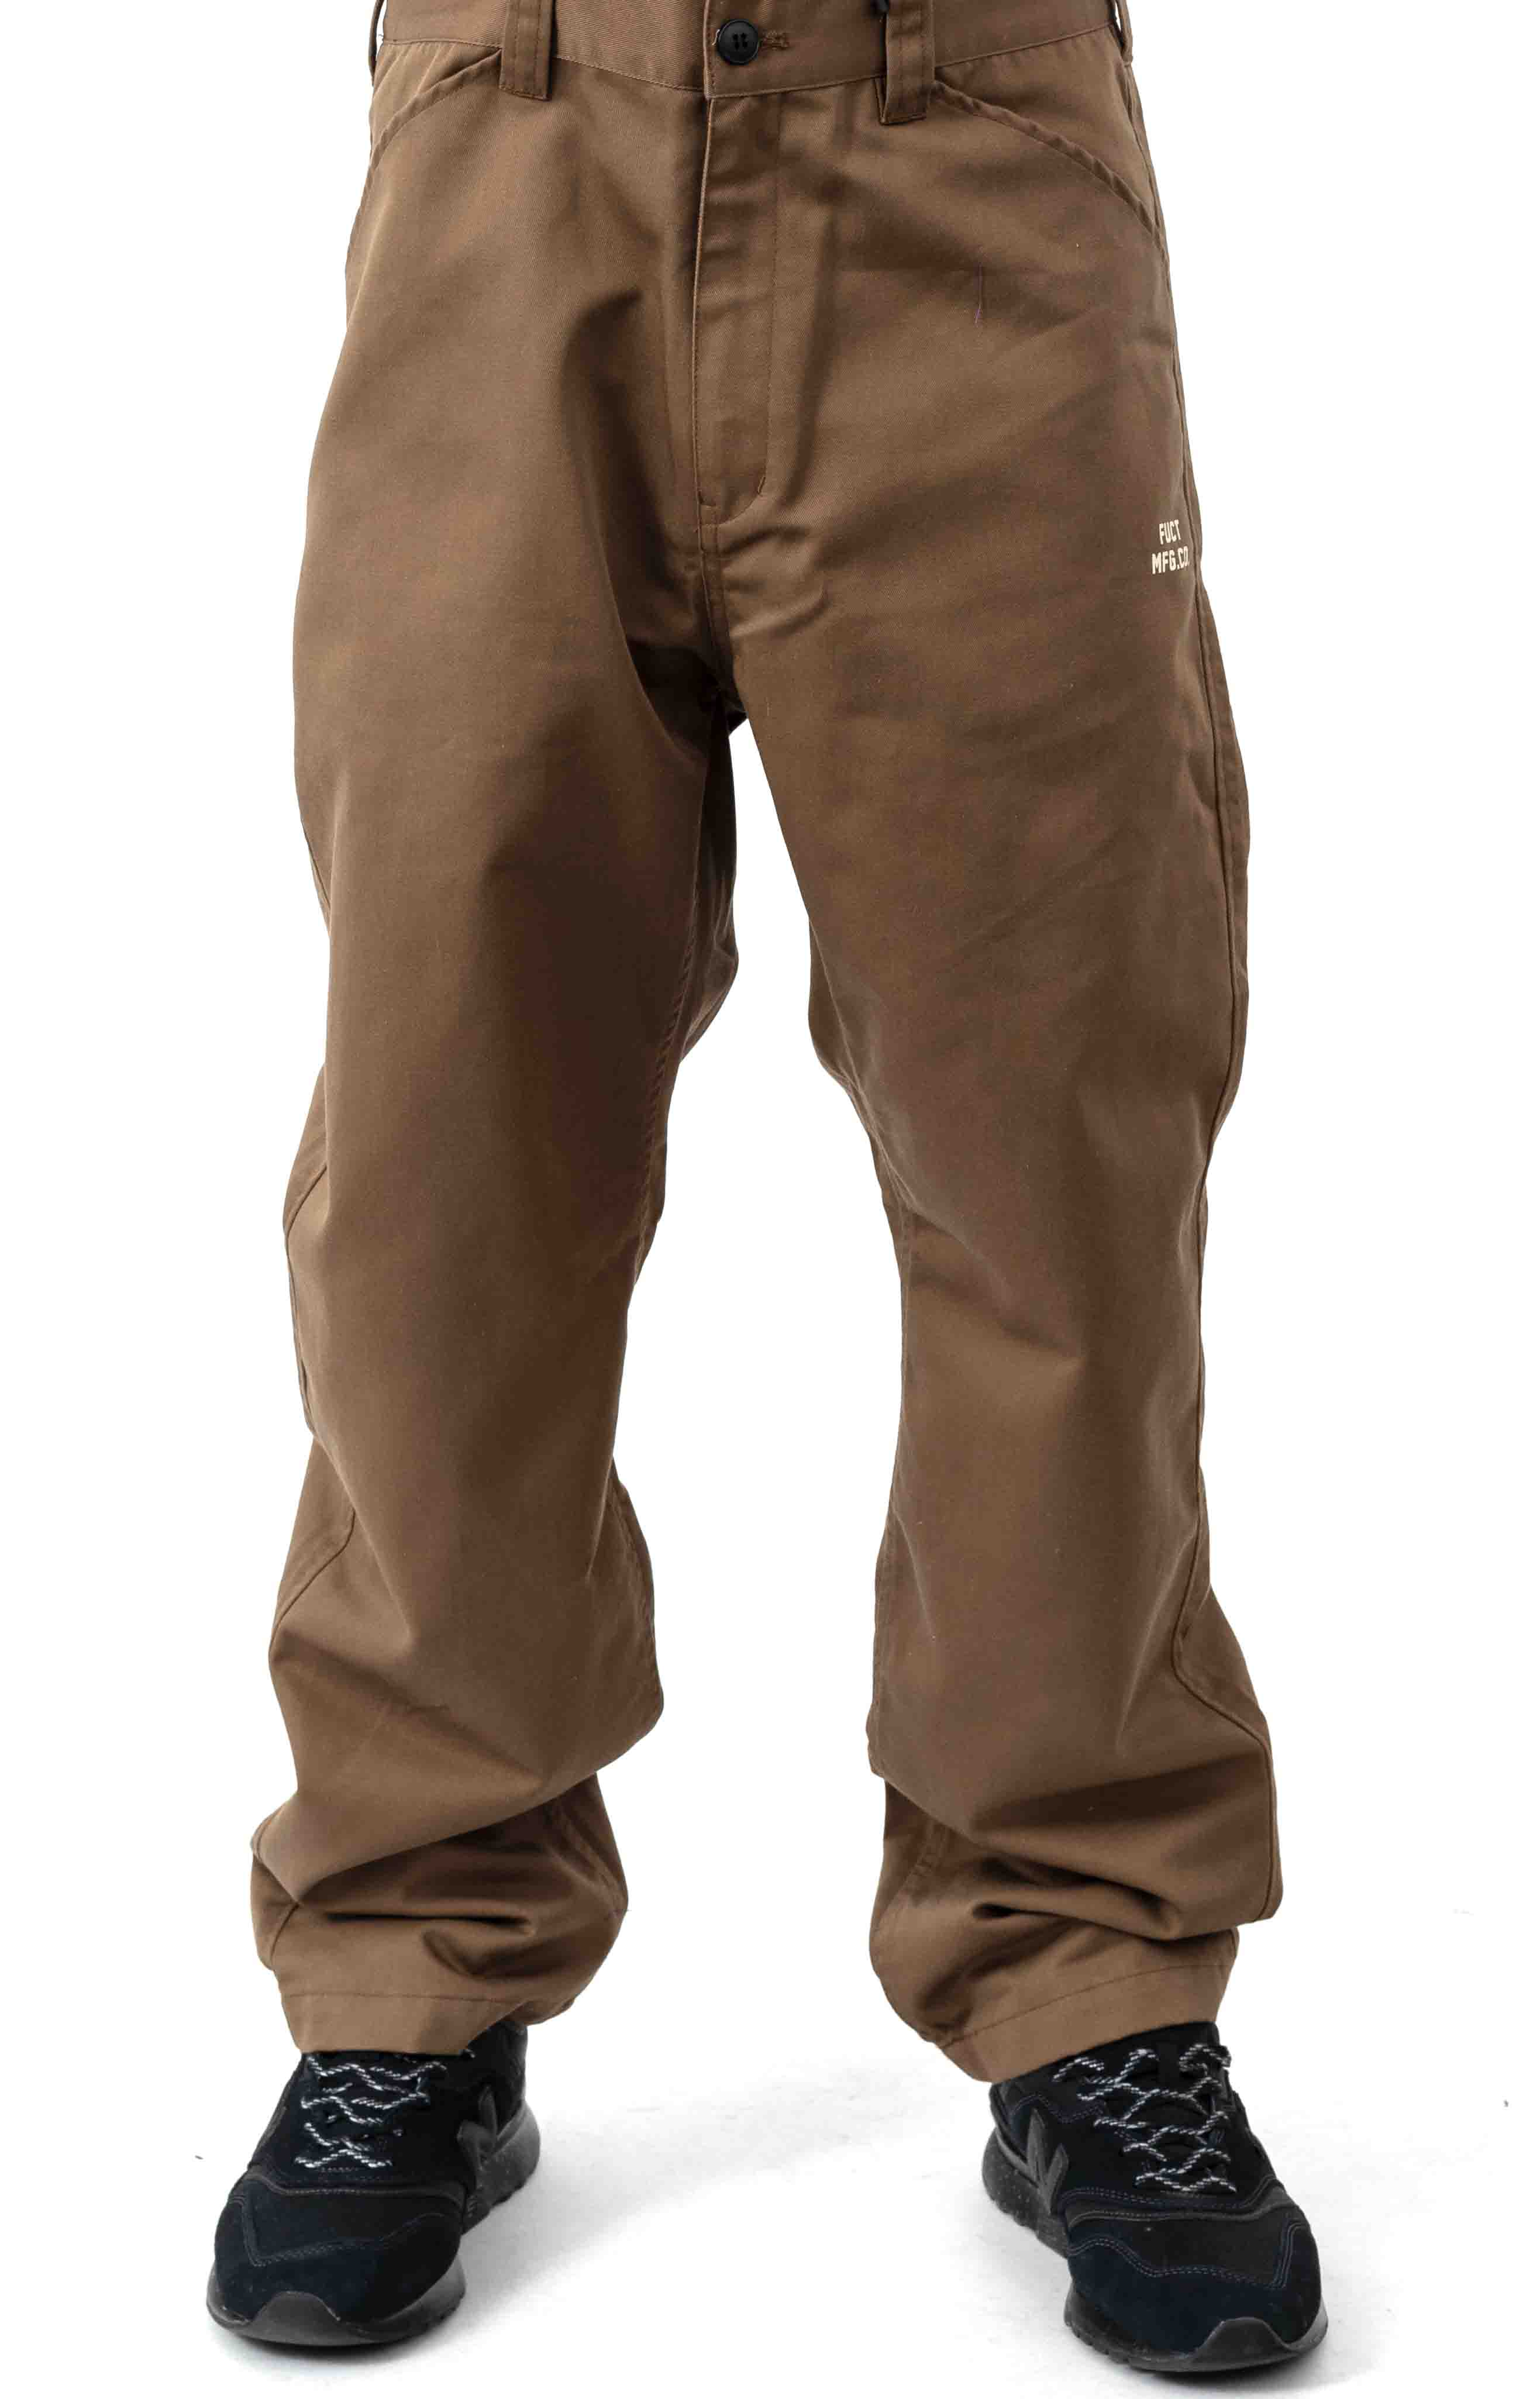 Deck Chino Pants - Beige  2